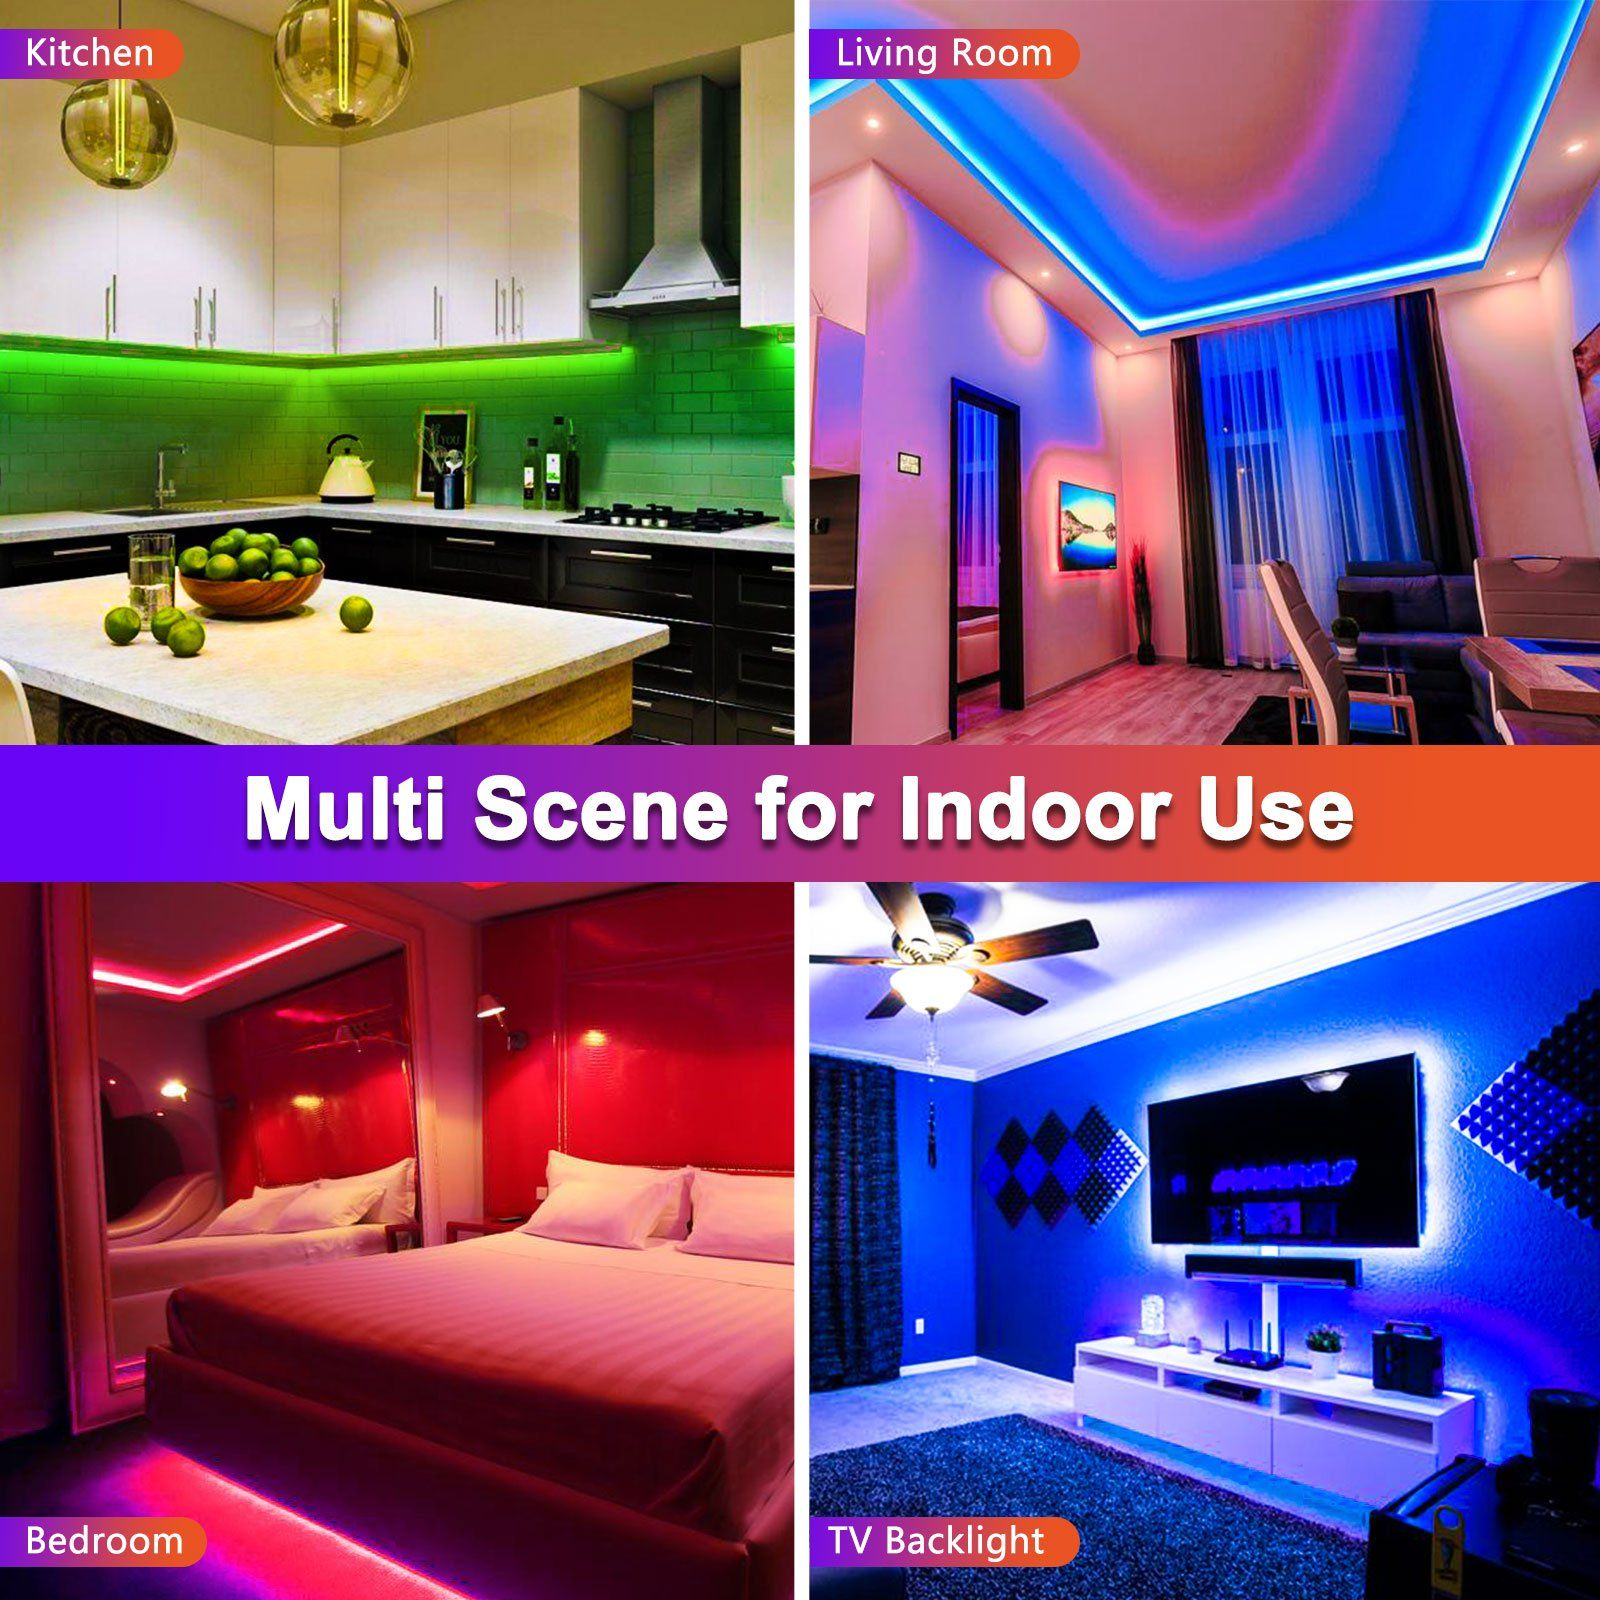 Eeekit 16 4ft 300 Led 3528smd Light Strip Multi Color Changing Includes 44 Key Remote 12v Power Supply For Home Lighting Kitchen Bed Bar And Decor Wal In 2020 Strip Lighting